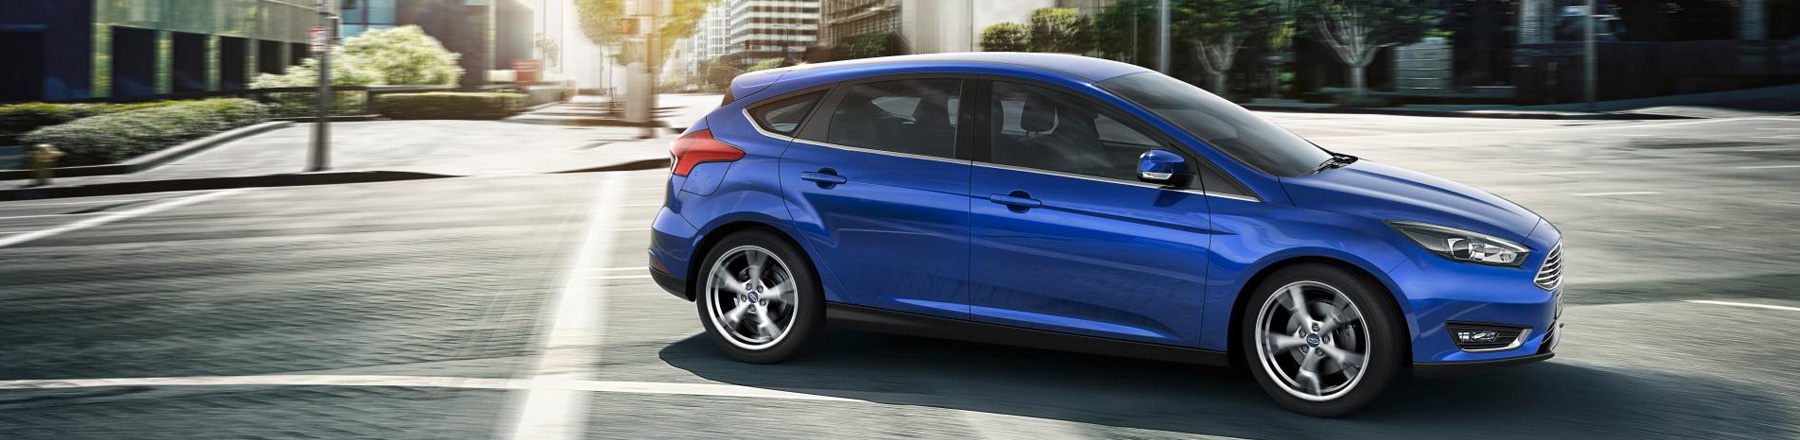 Ford Focus model in Airdrie, AB